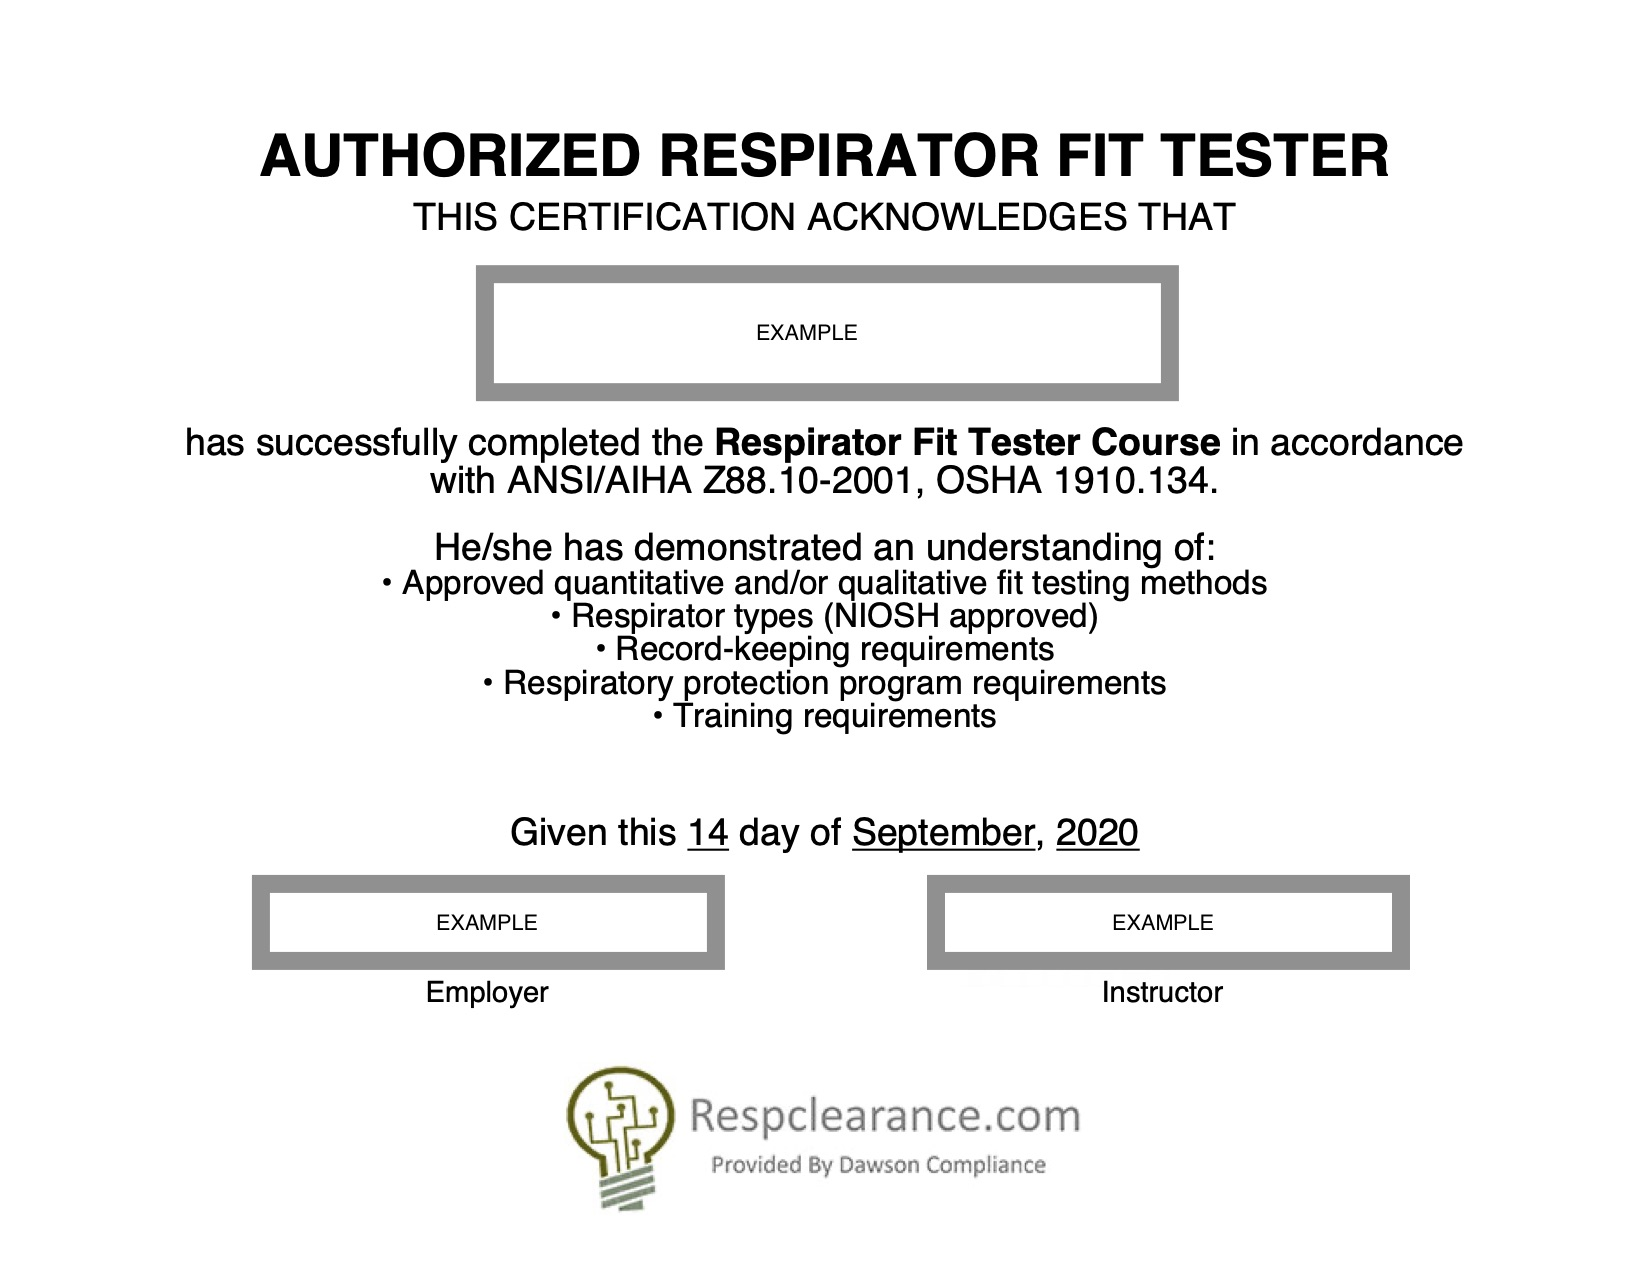 RespClearance.com - Respirator Medical Evaluation and Fit Tester For Osha 10 Card Template